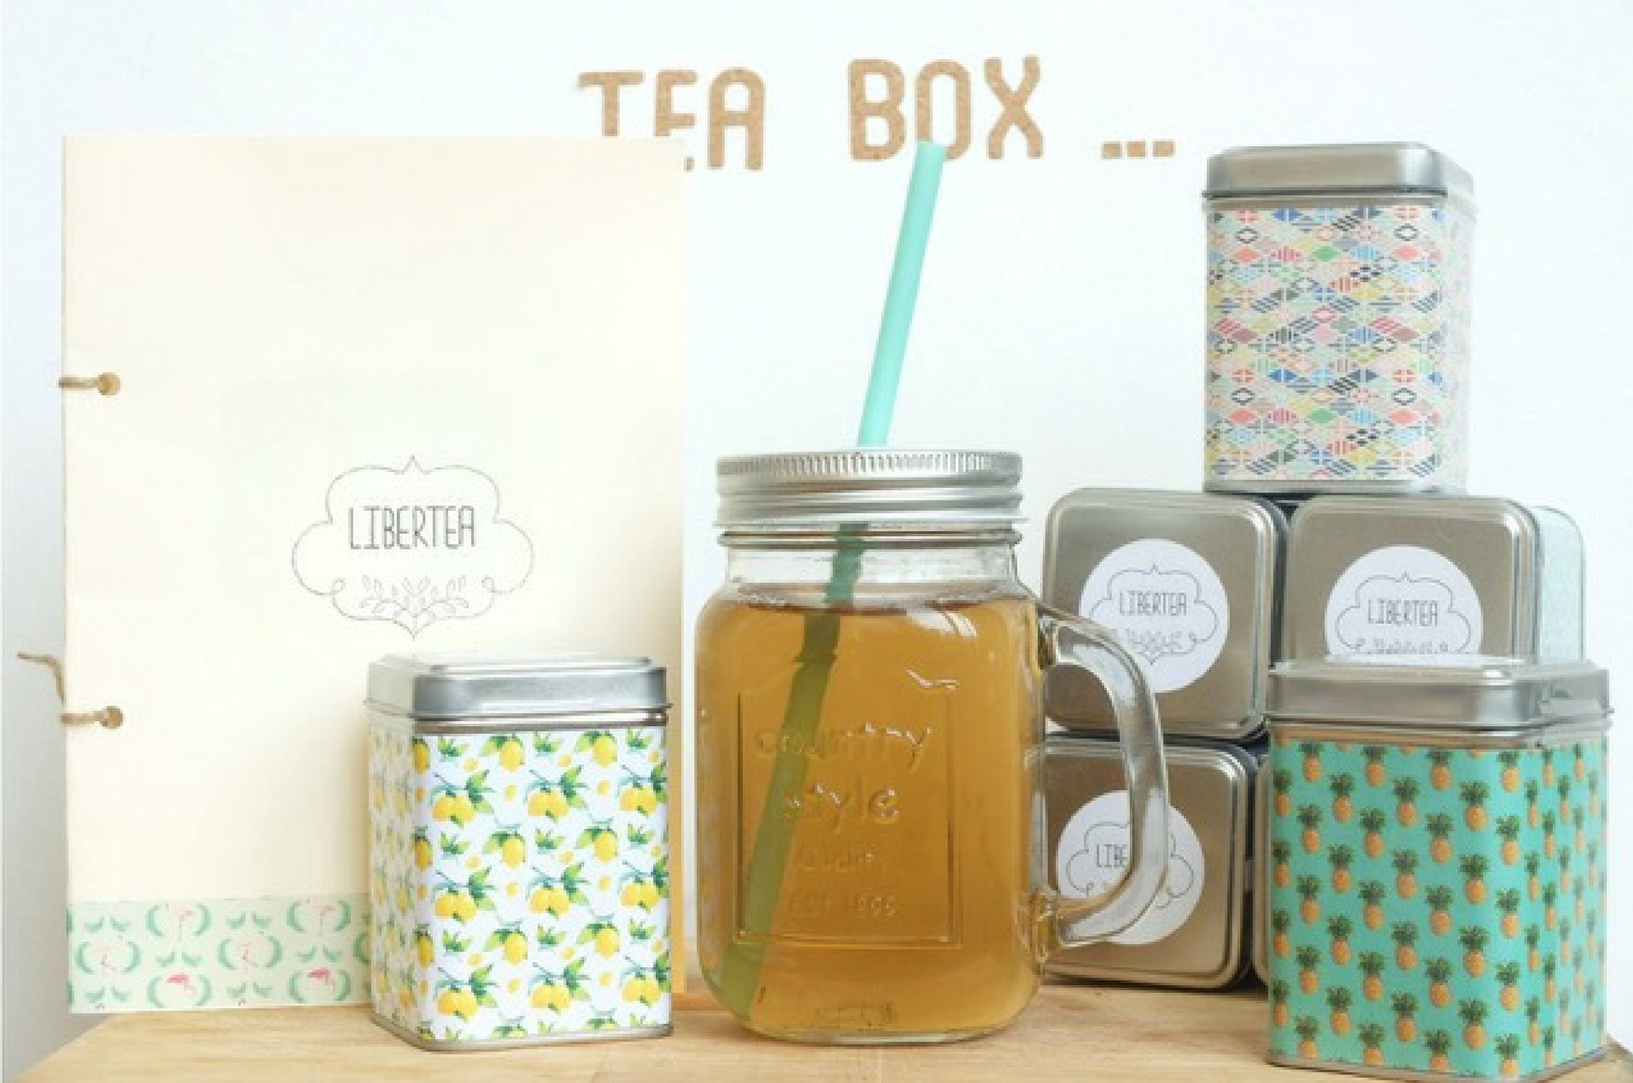 Tea box été